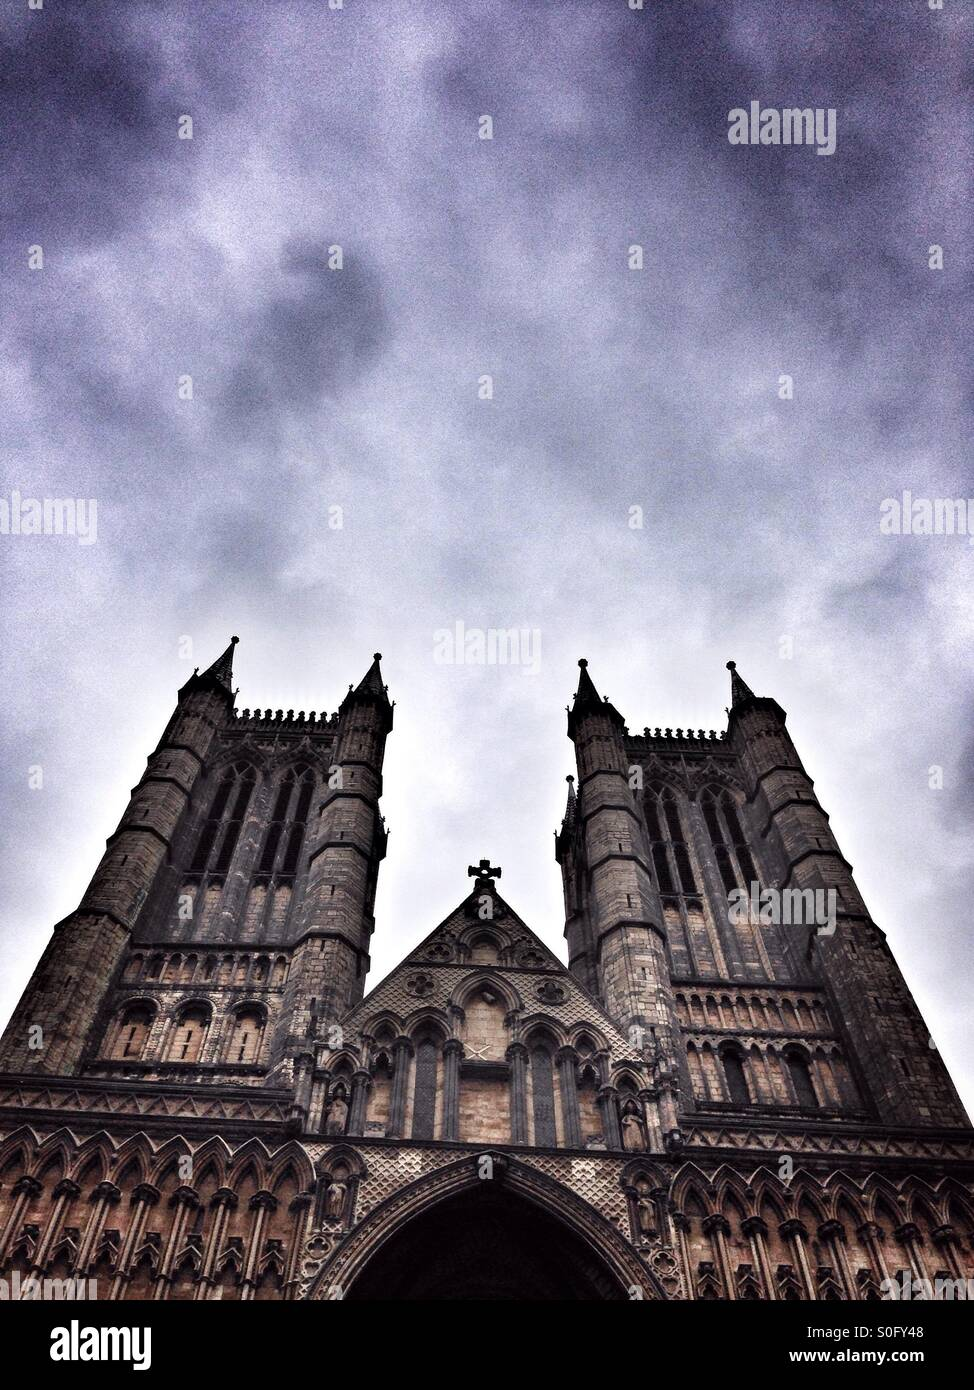 Lincoln Cathedral low angle view of the West facade towers. Lincolnshire, England, UK - Stock Image